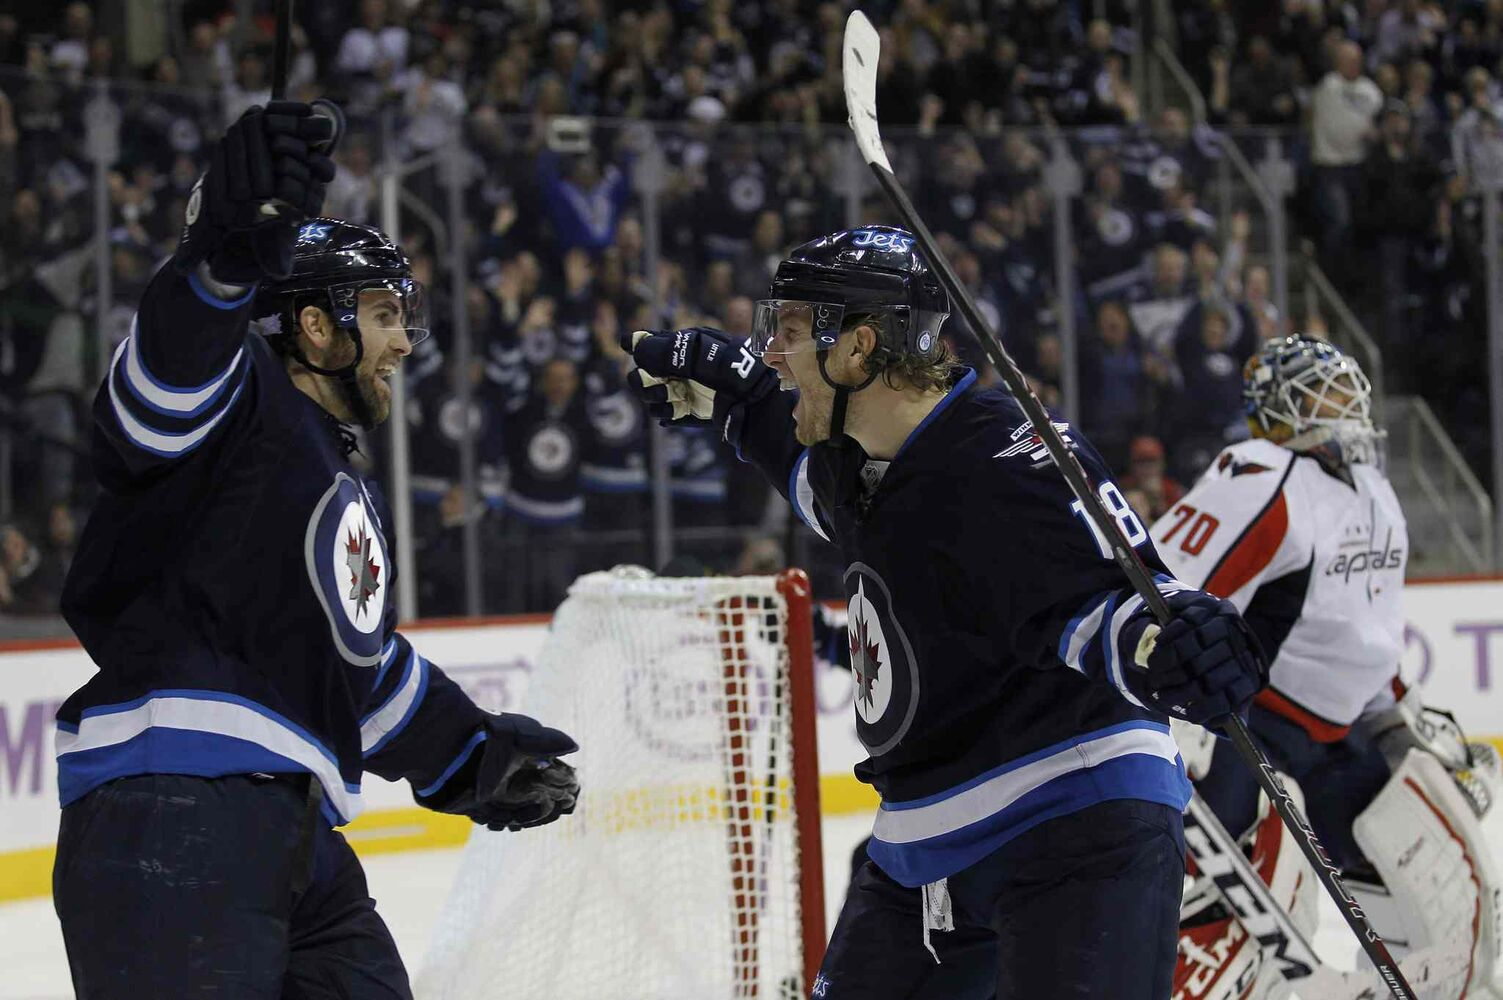 Winnipeg Jets captain Andrew Ladd (left) and teammate Bryan Little celebrate Little's goal against Washington Capitals goaltender Braden Holtby during the second period. (TREVOR HAGAN / THE CANADIAN PRESS)